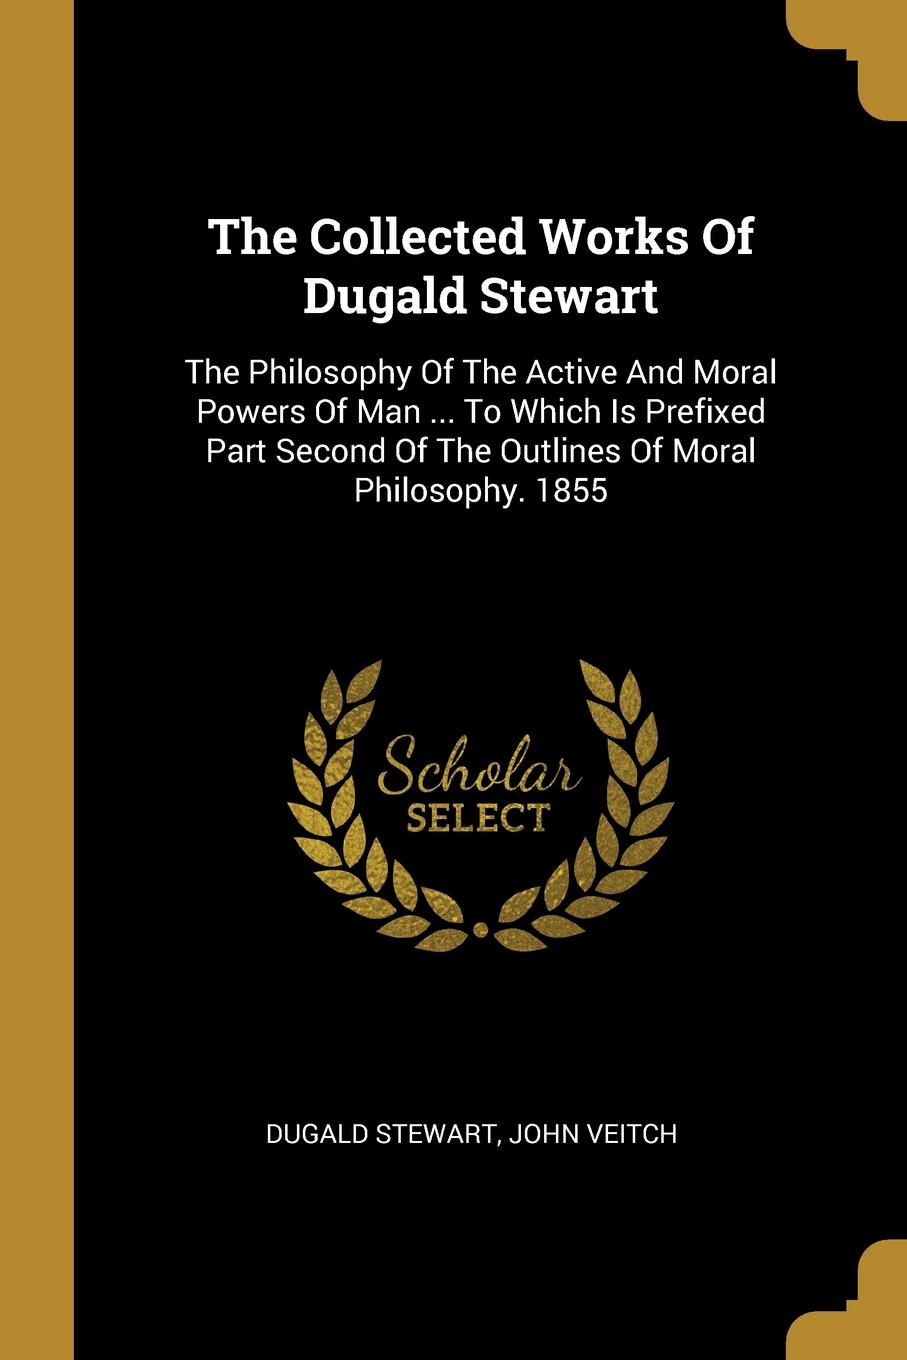 Dugald Stewart, John Veitch The Collected Works Of Dugald Stewart. The Philosophy Of The Active And Moral Powers Of Man ... To Which Is Prefixed Part Second Of The Outlines Of Moral Philosophy. 1855 все цены